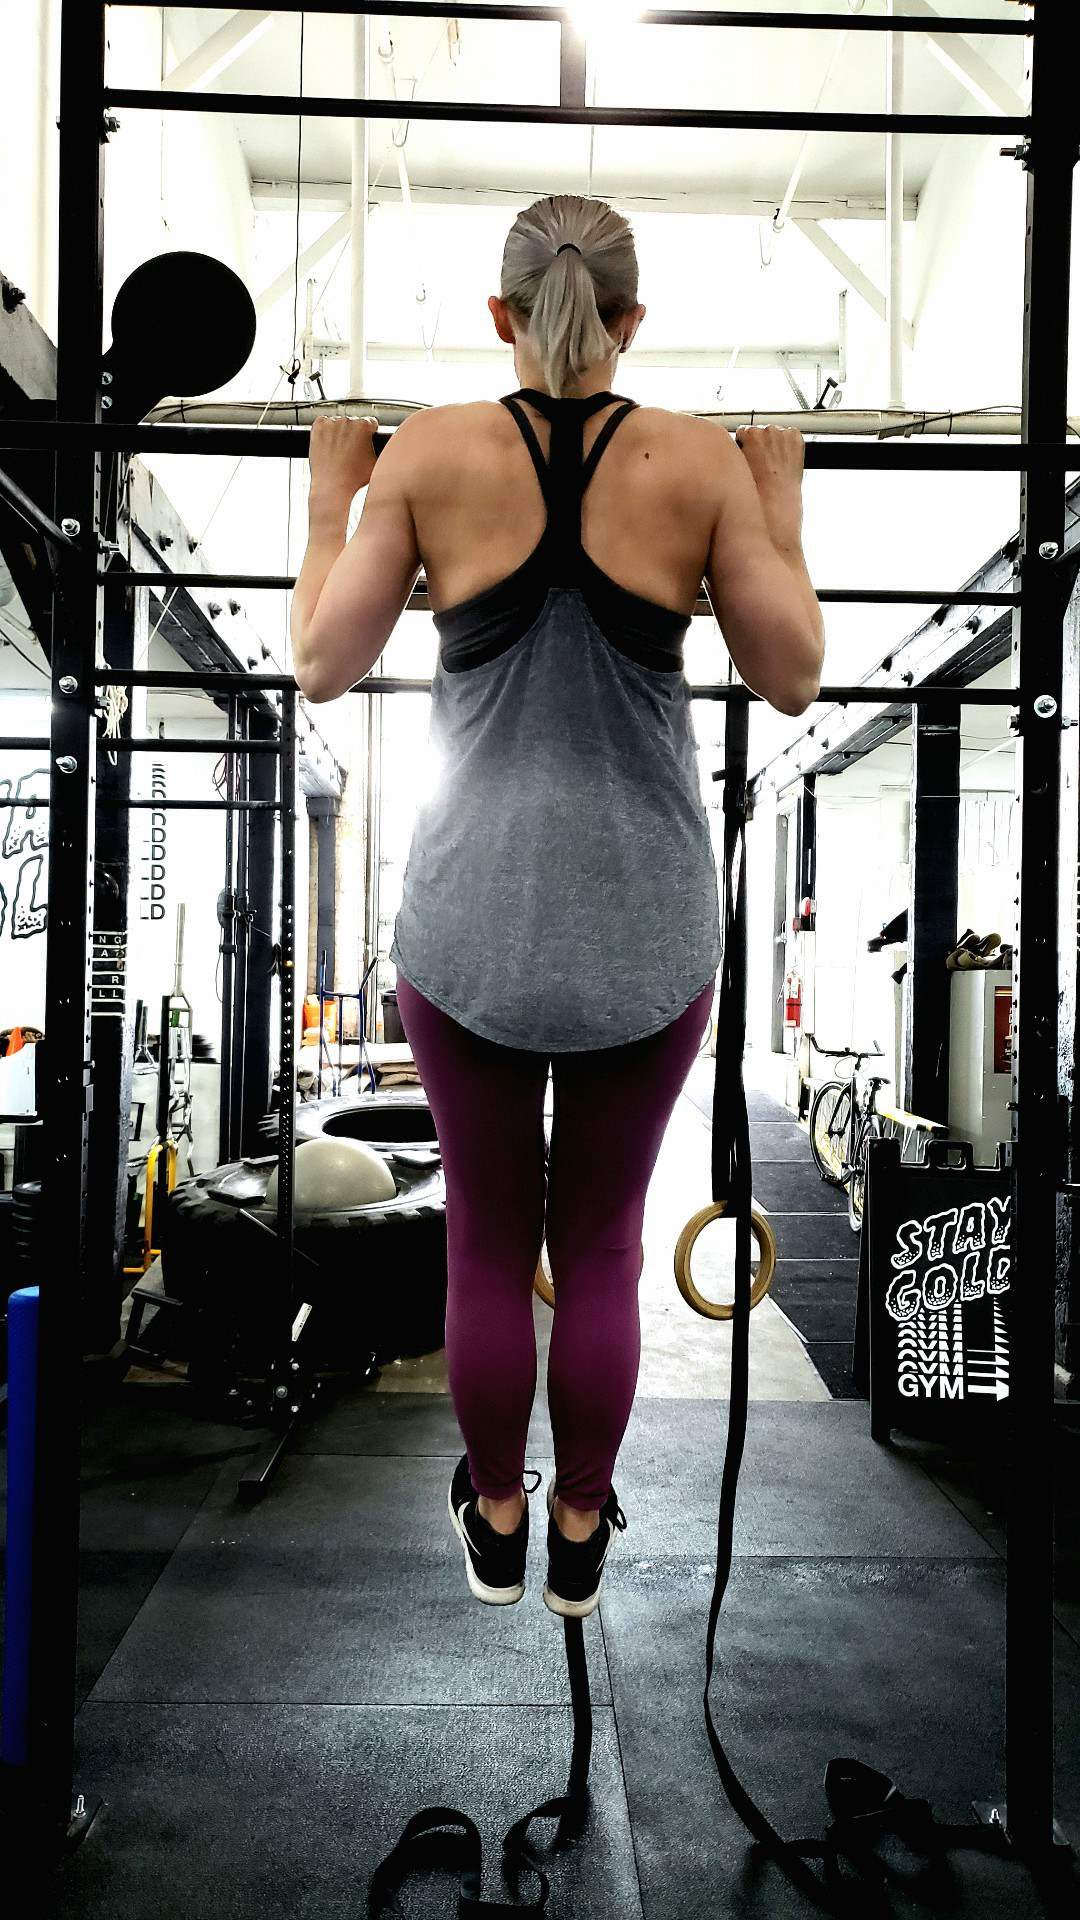 Linn doing an overhand grip flexed arm hang at the top of the bar. She is wearing purple leggings and a grey racer back top.